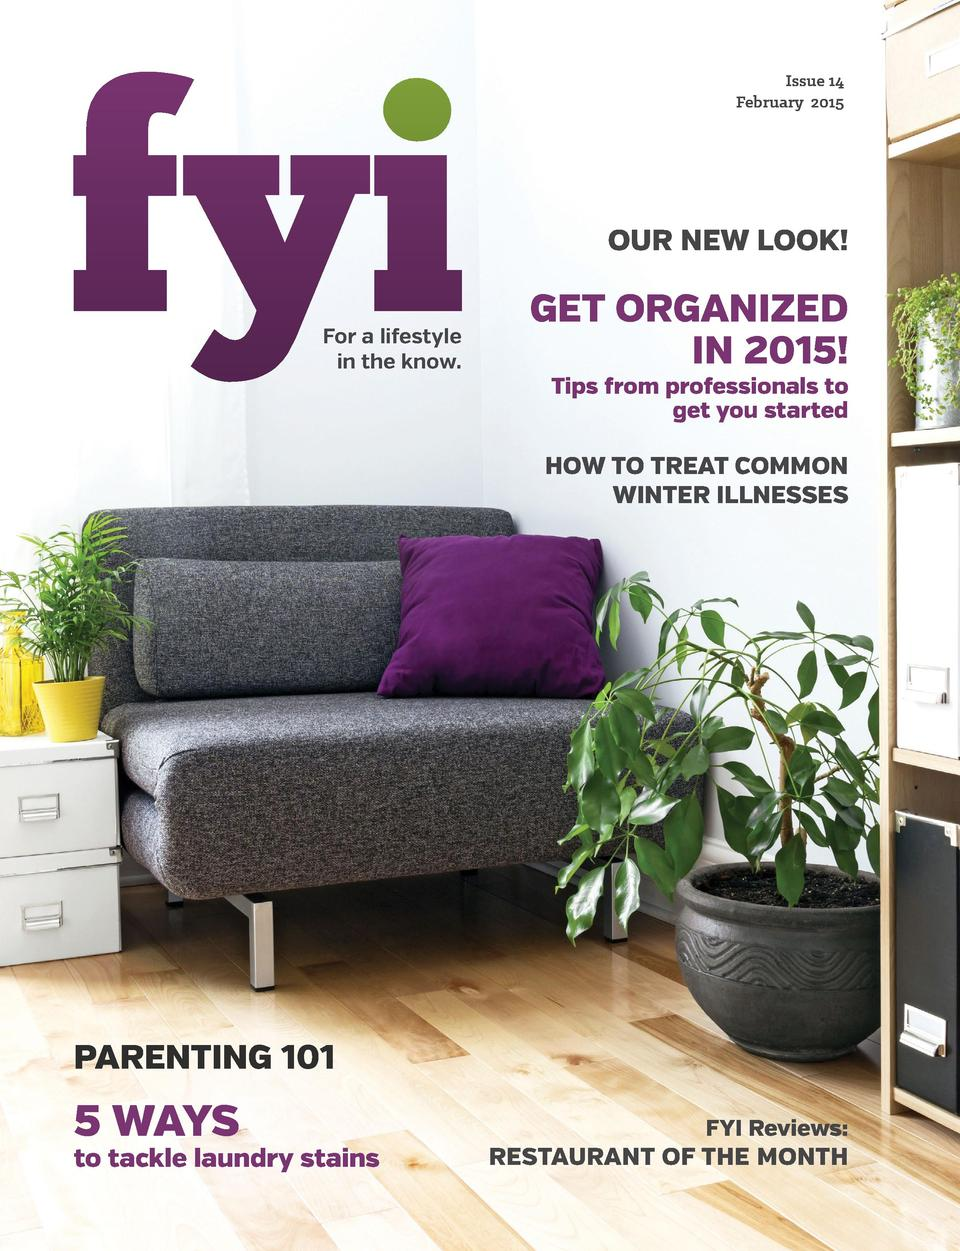 Issue 14 February 2015  OUR NEW LOOK  For a lifestyle in the know.  Get organized in 2015  Tips from professionals to get ...